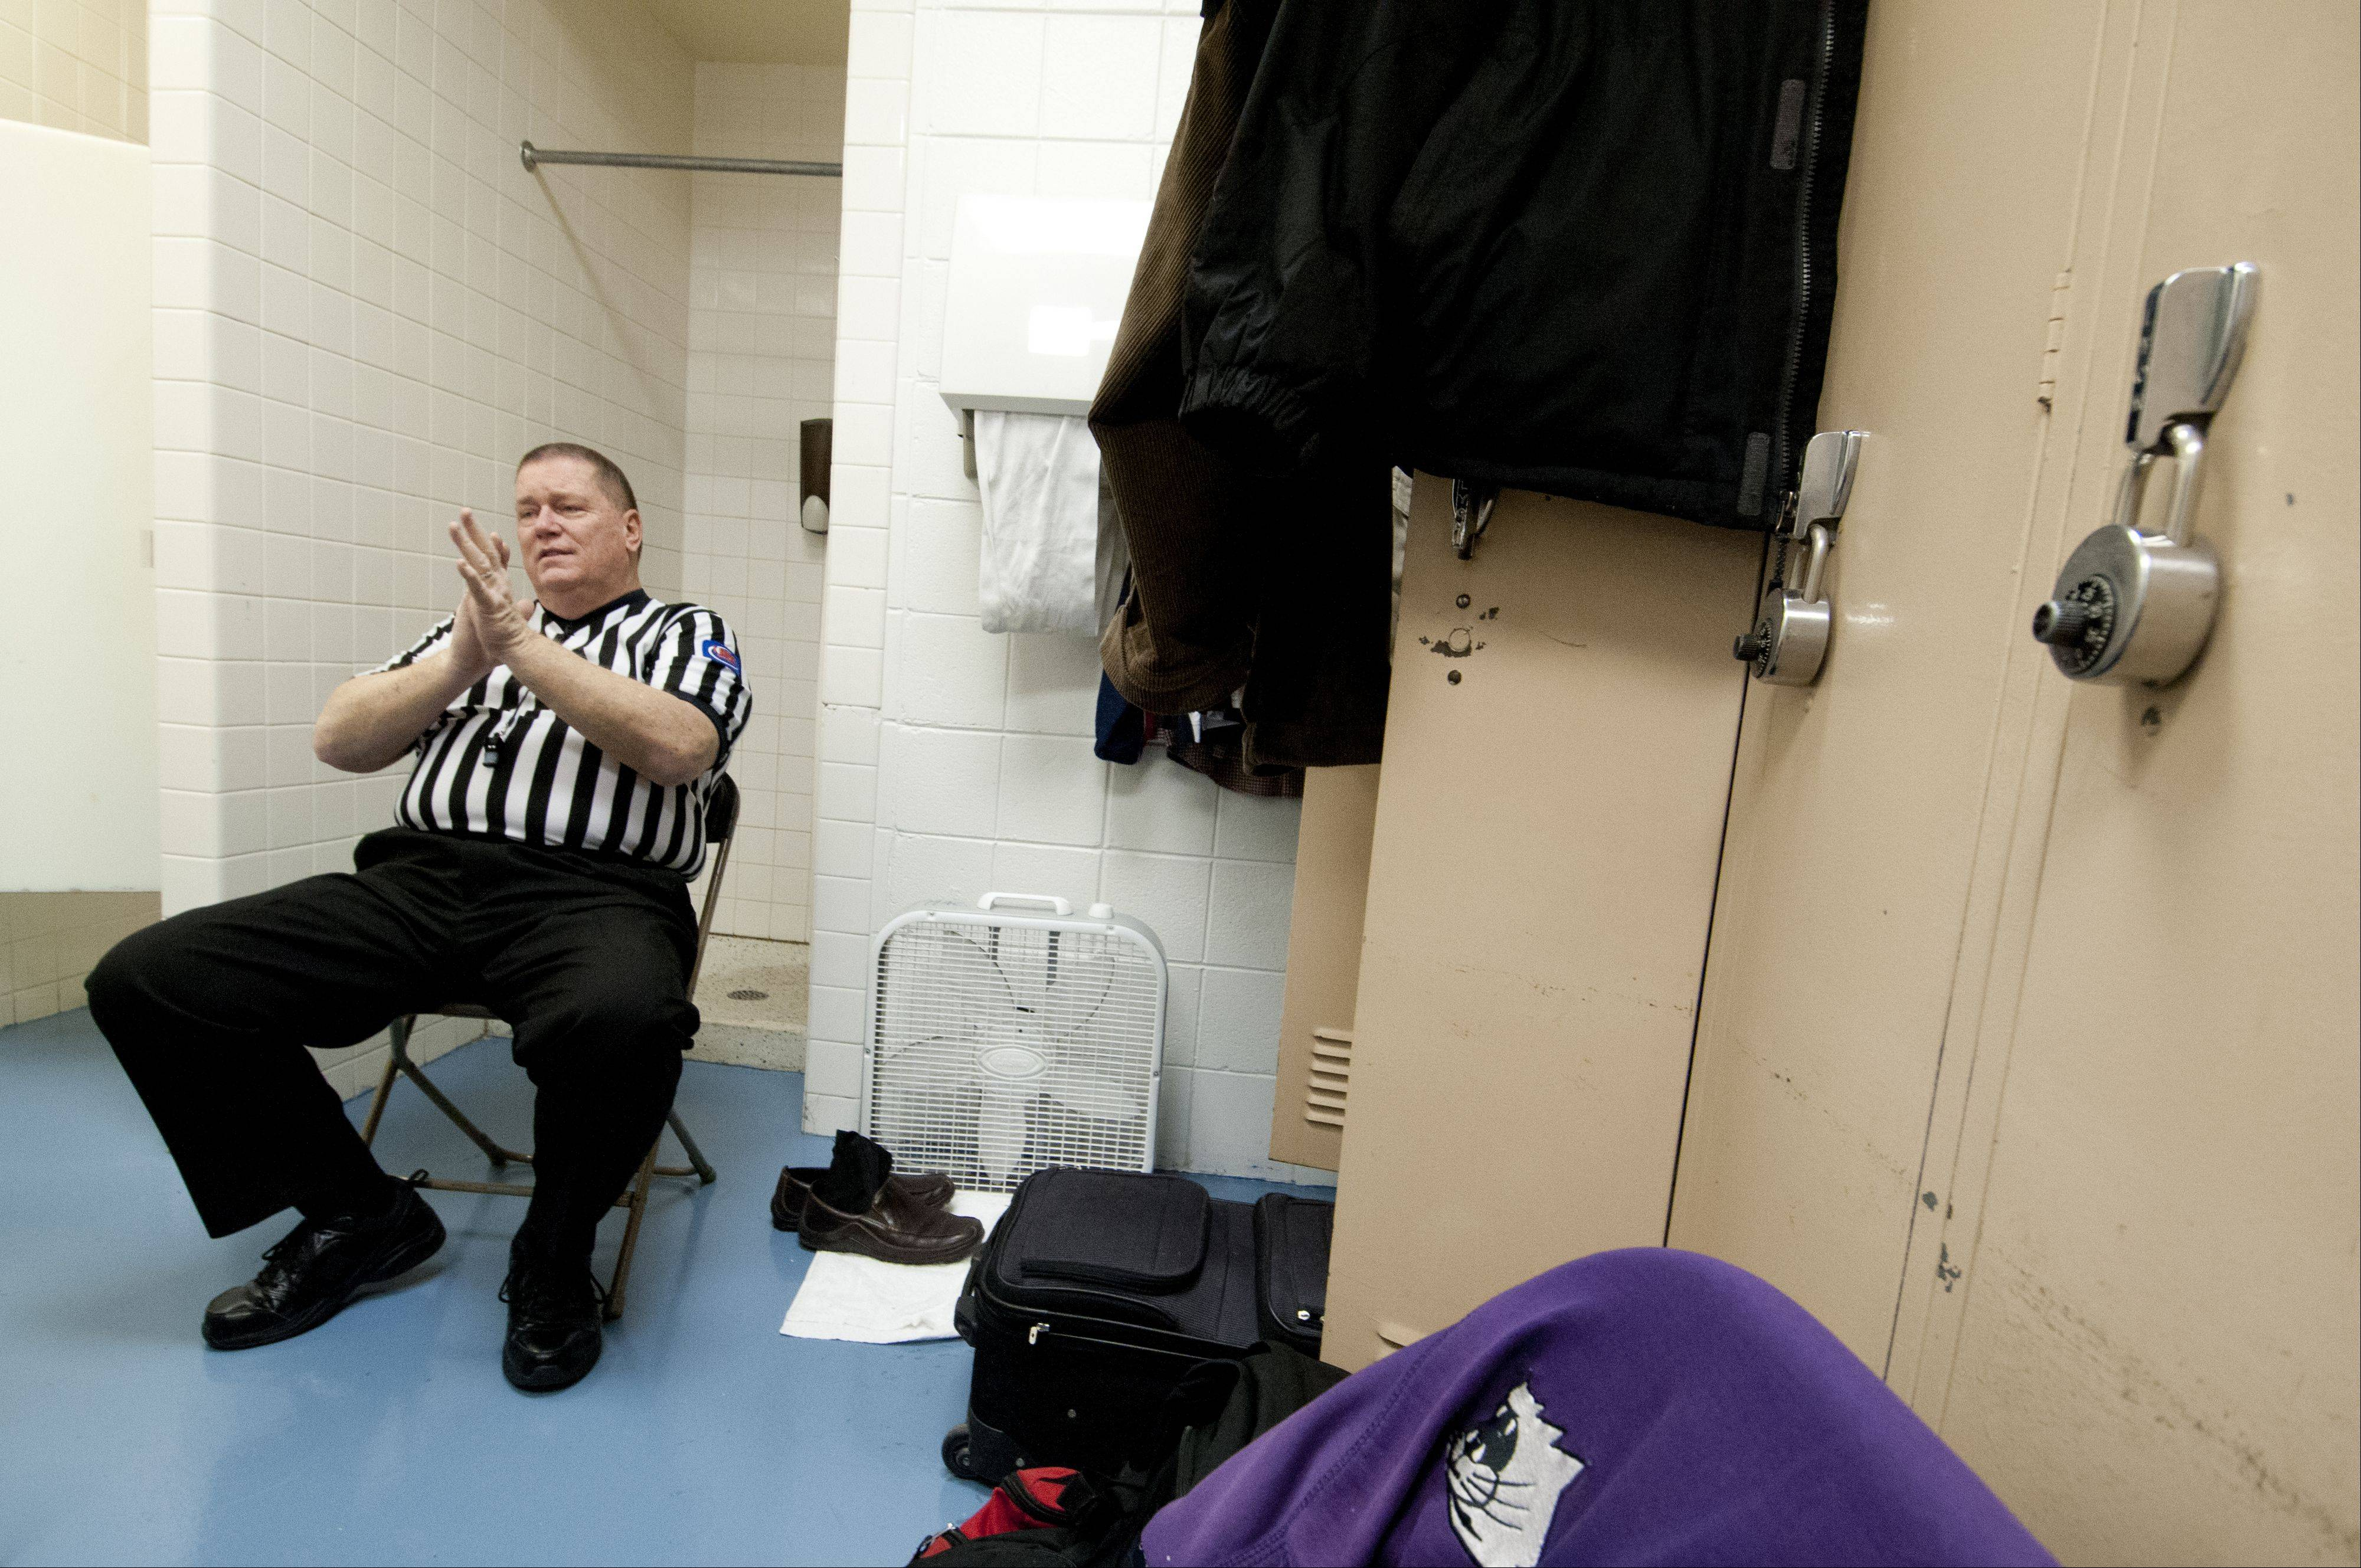 Longtime IHSA referee Rick Bieterman talks with his fellow referees during halftime in the referee locker room at Conant High School.